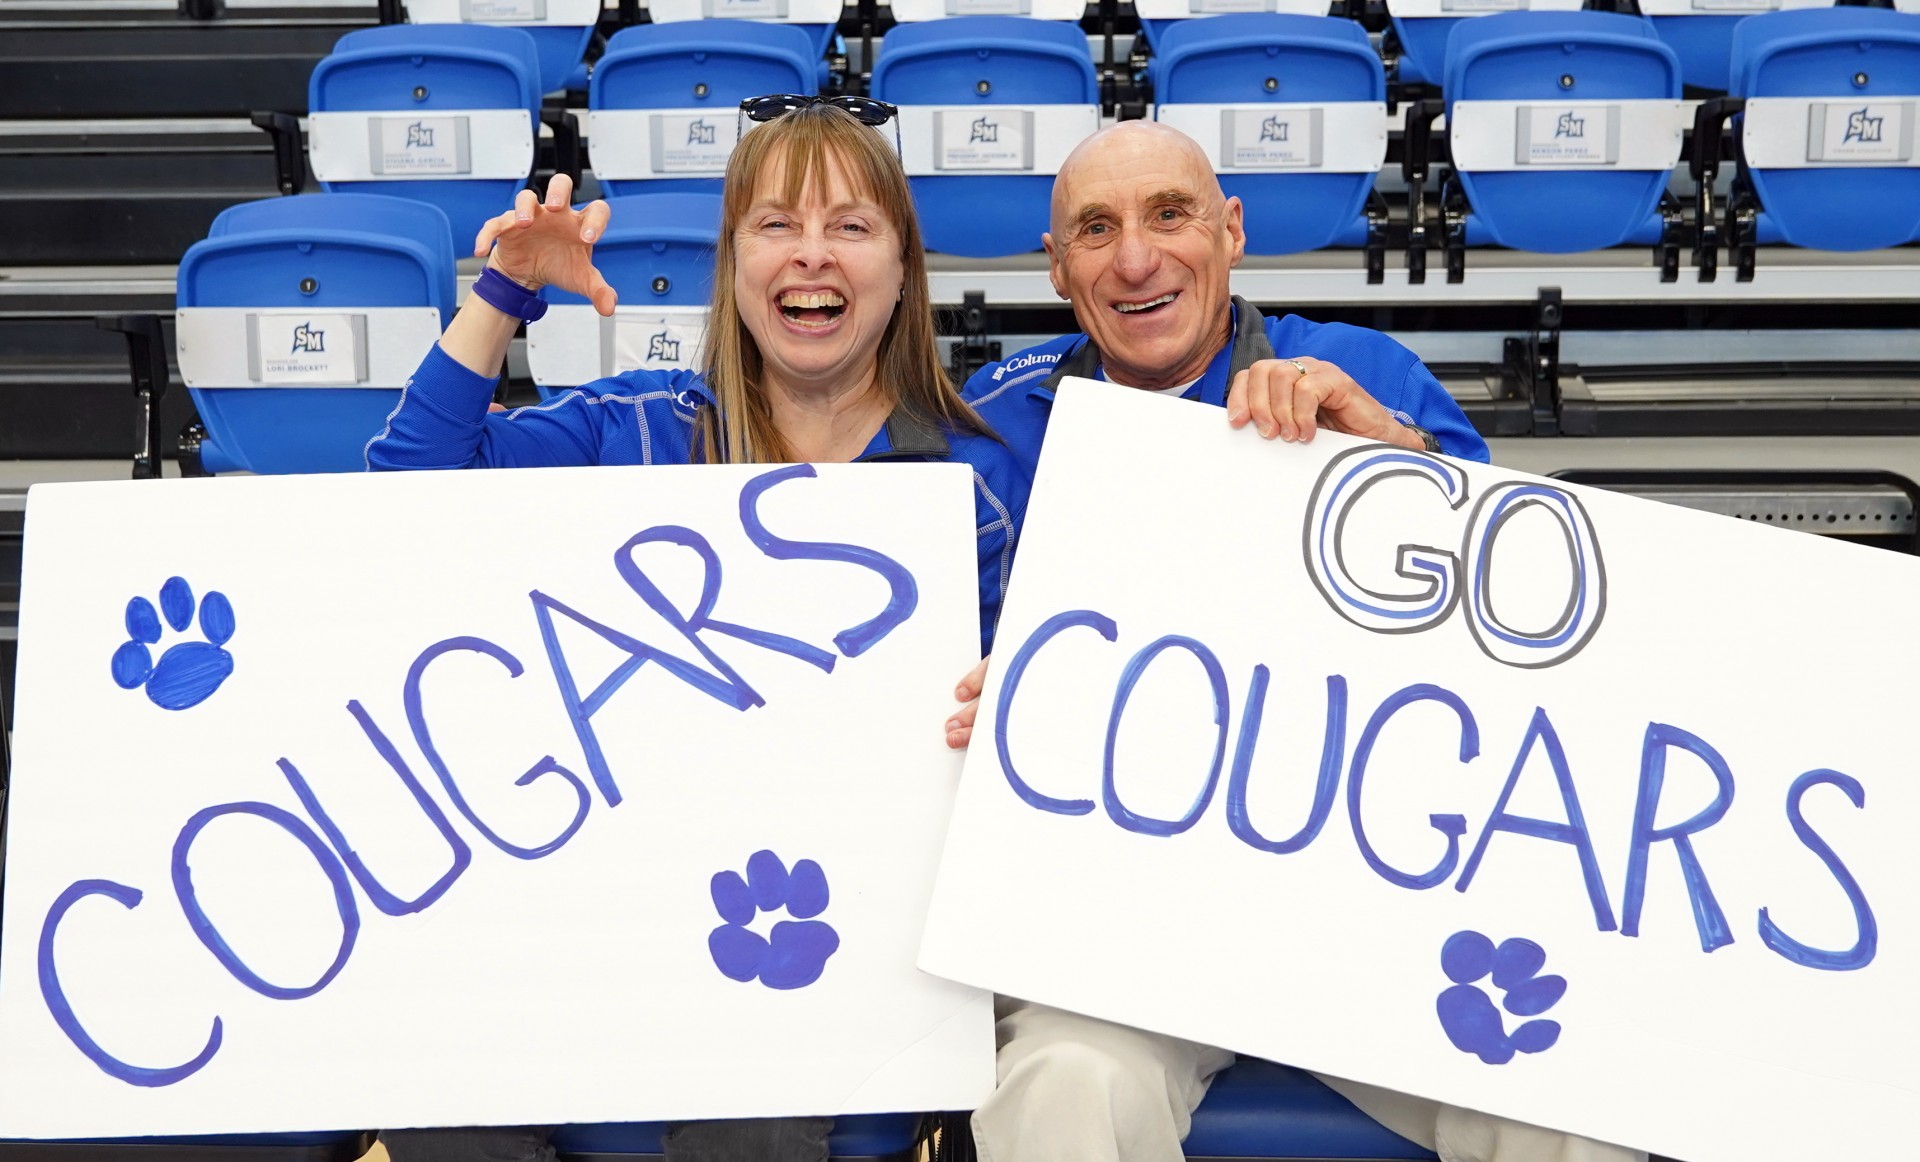 Longtime CSUSM supporters Carleen Kreider and Dick Lansing are covering admission costs for the first 100 students at Friday night's women's basketball game between the Cougars and Cal State East Bay at UCSD's RIMAC Arena.